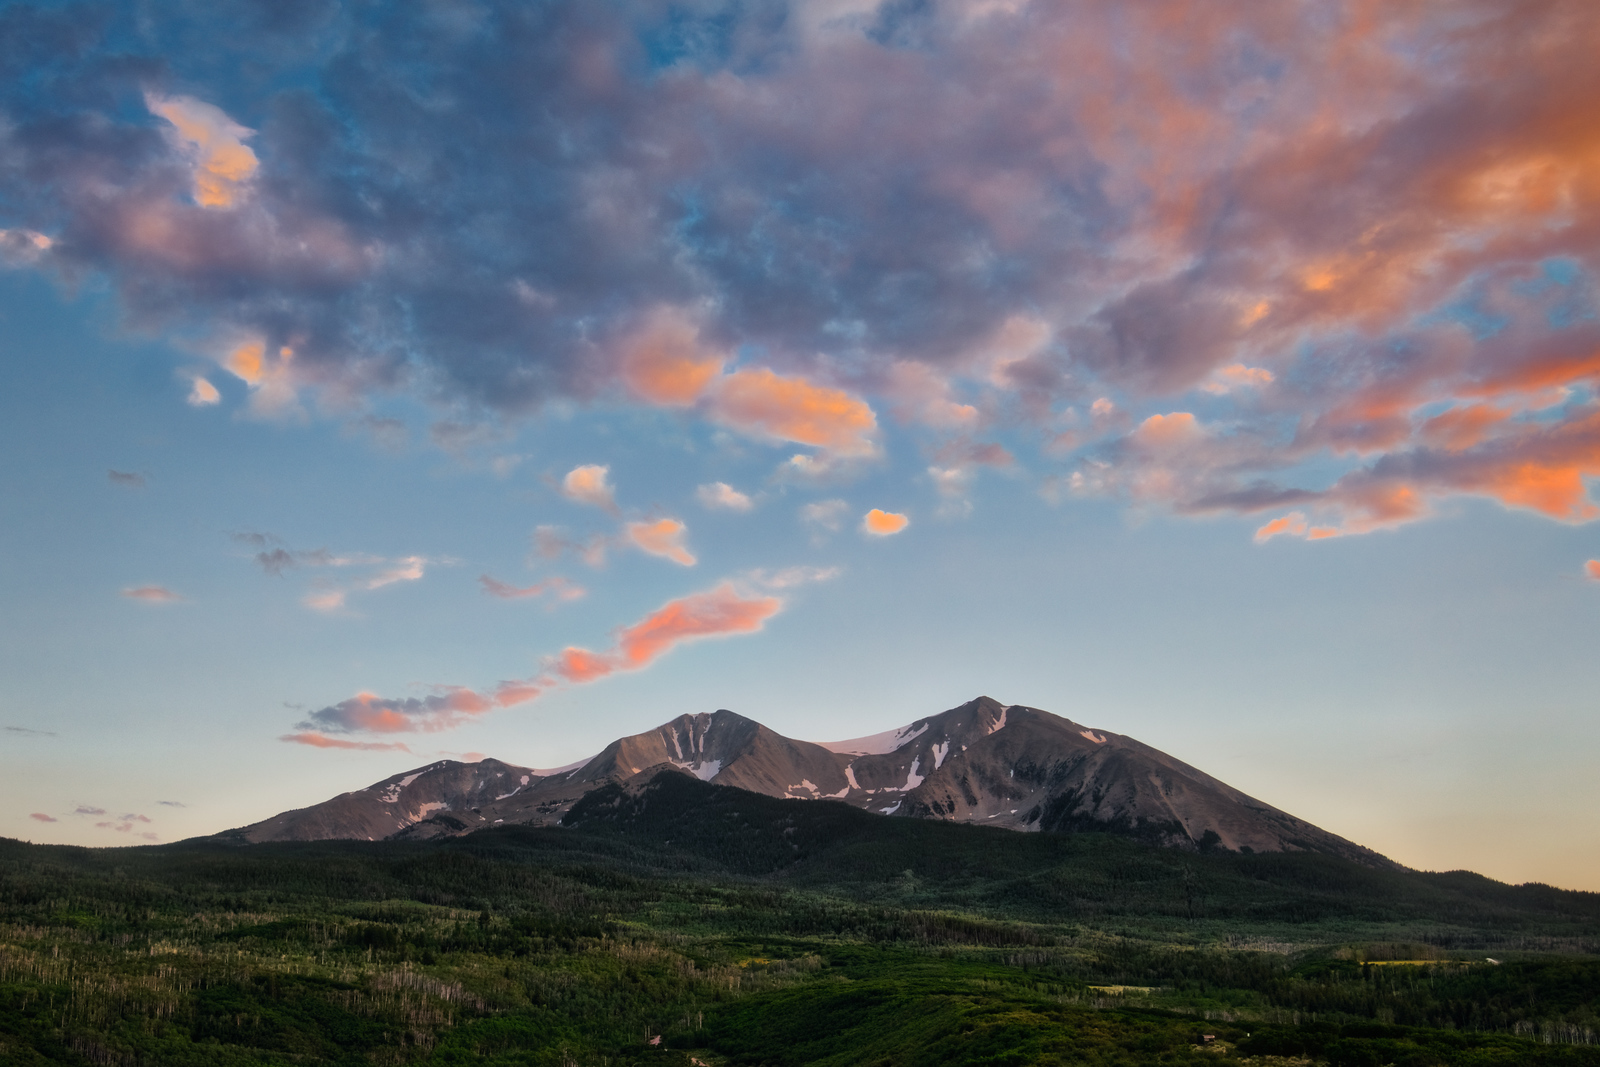 Sunset over Mount Sopris in Carbondale Colorado with Intentionally Lost and Kevin Wenning #intentionallylost